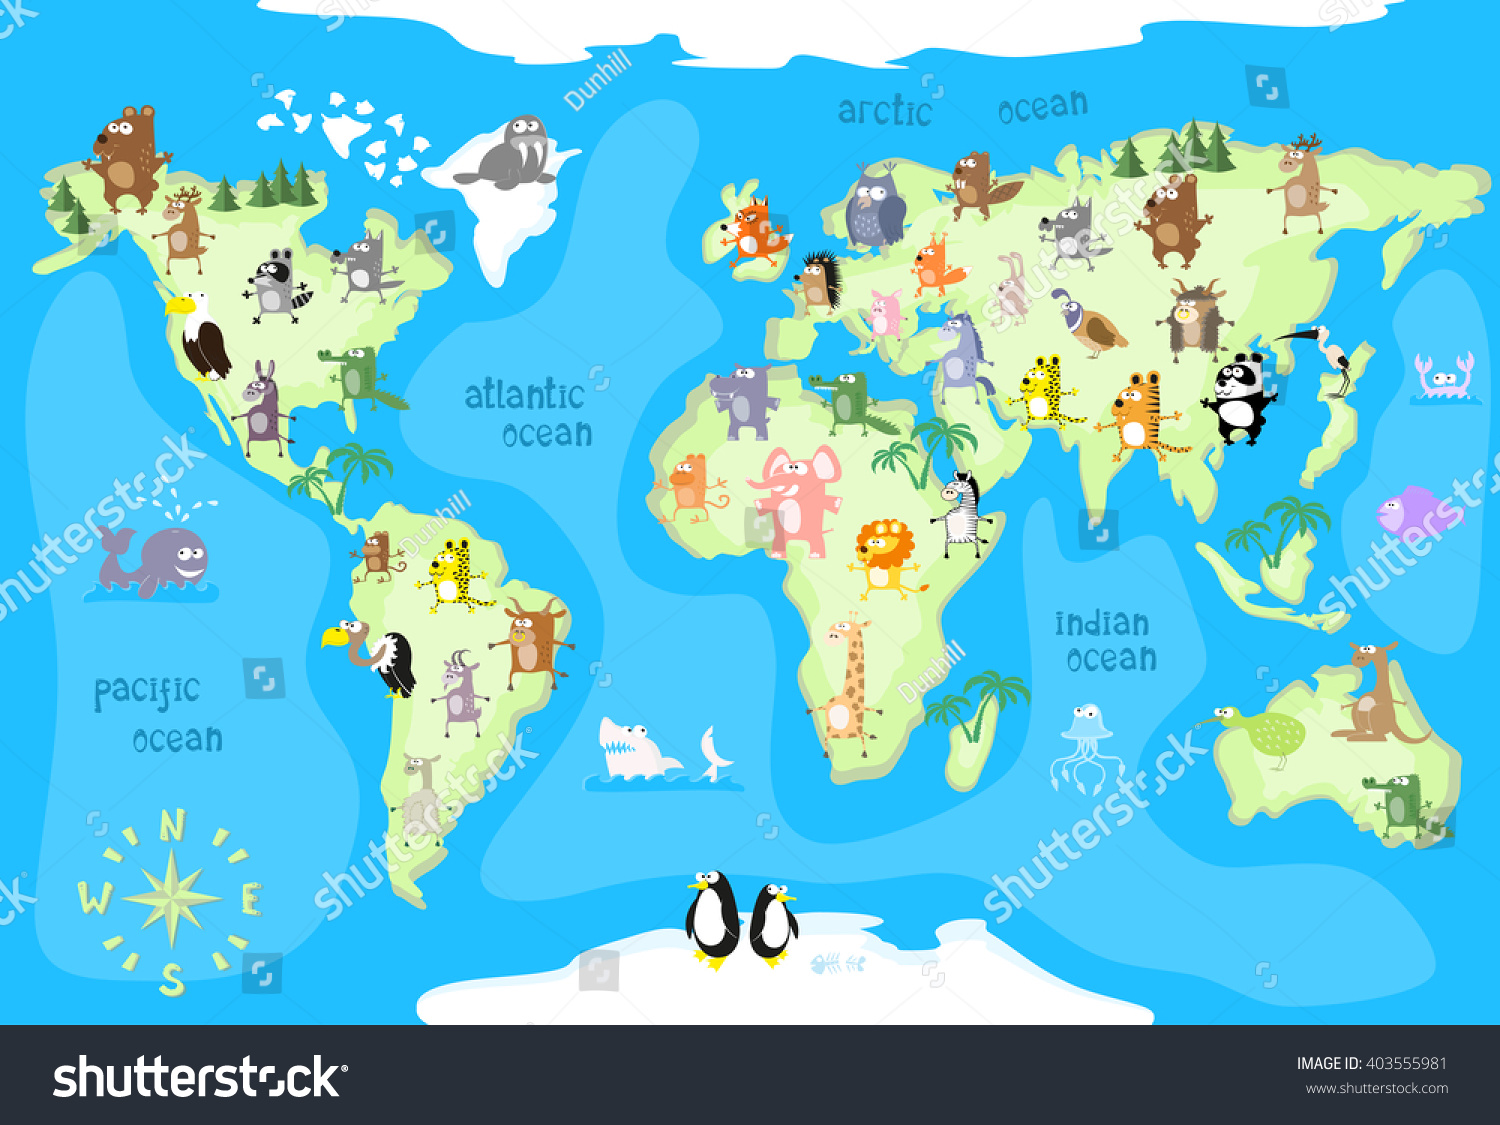 Concept design world map animals all vectores en stock 403555981 concept design world map animals all vectores en stock 403555981 shutterstock gumiabroncs